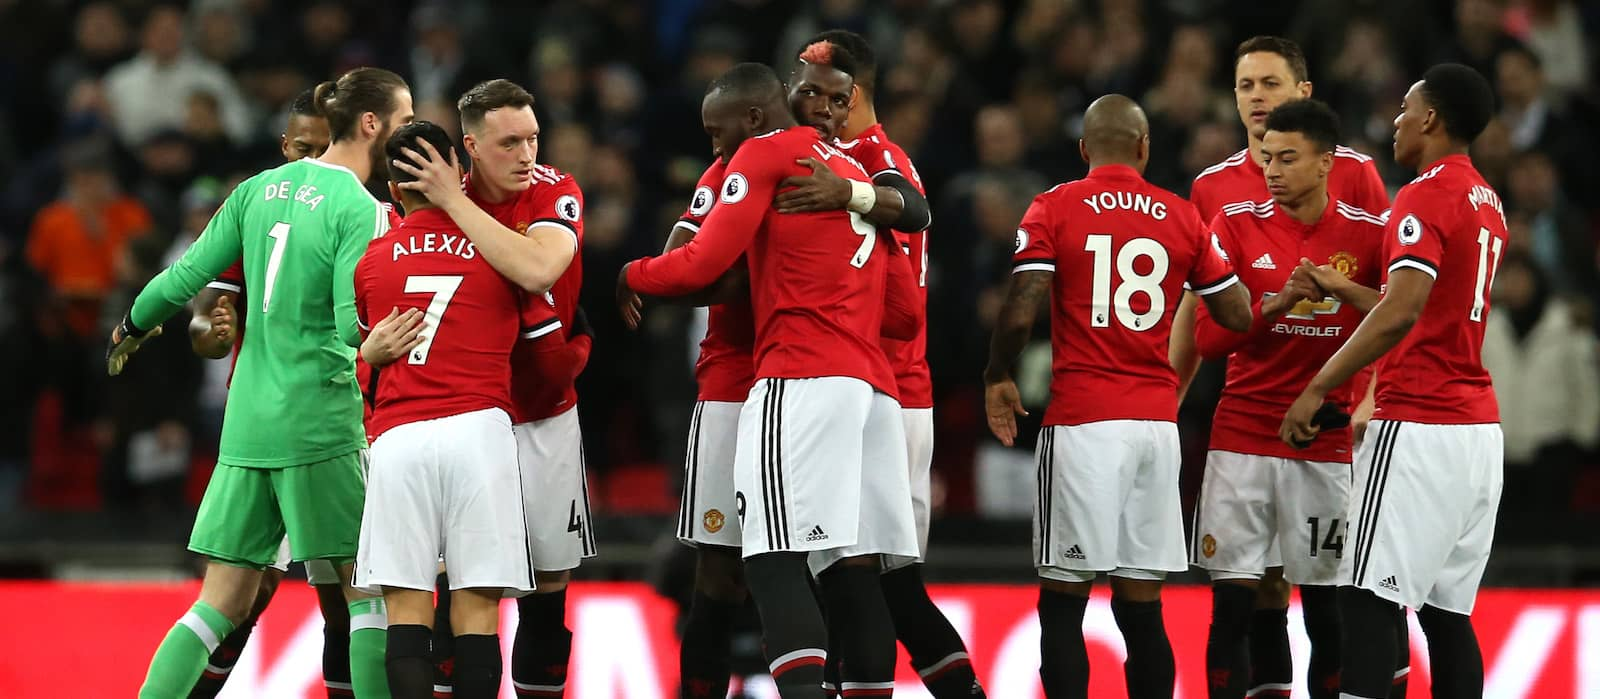 Ashley Young sheds light on dressing room atmosphere following Tottenham Hotspur defeat